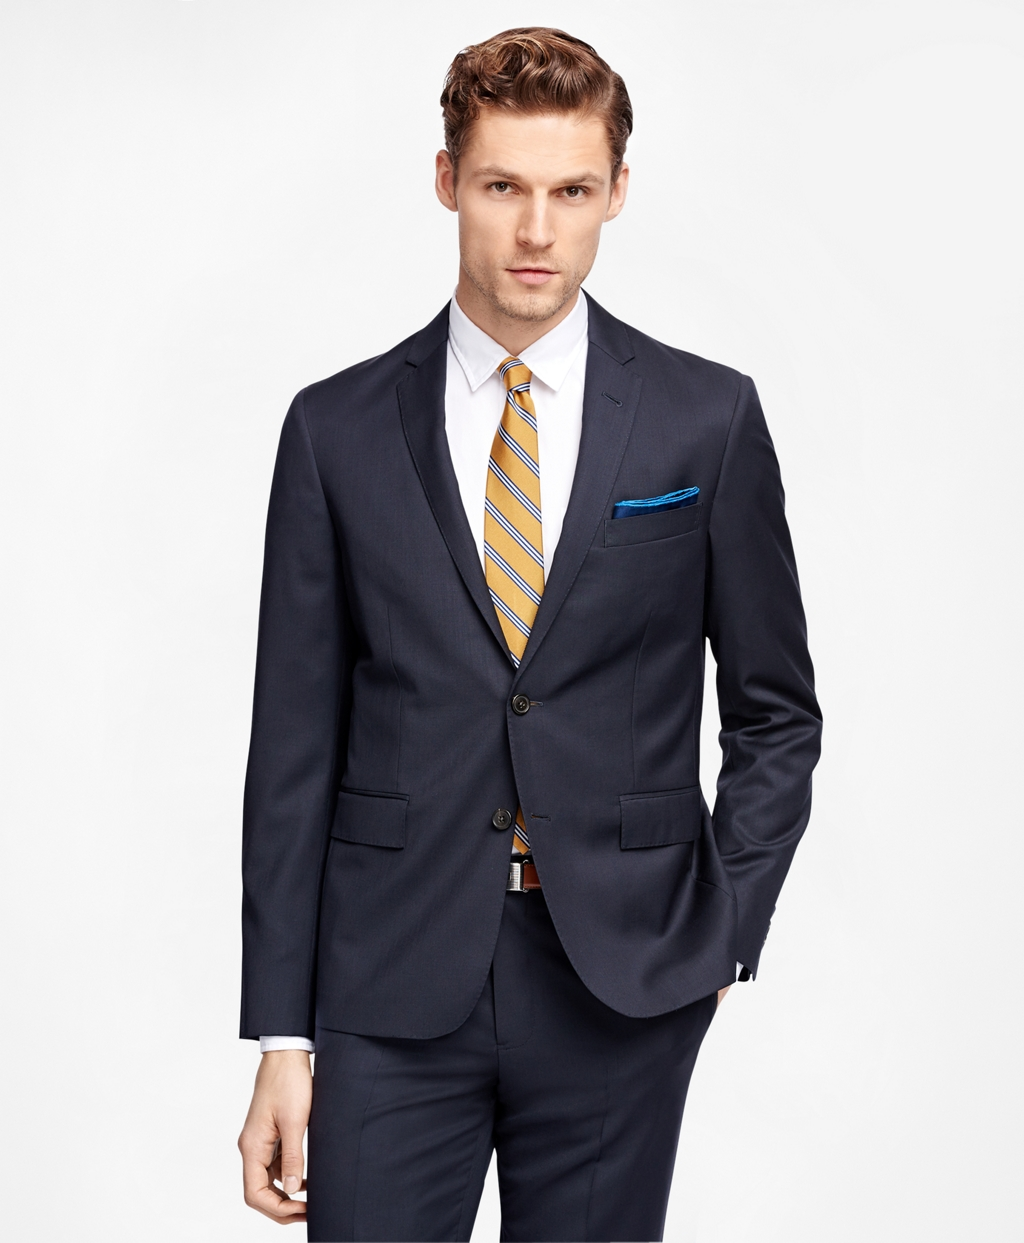 Men's Navy Suit Jacket | Brooks Brothers